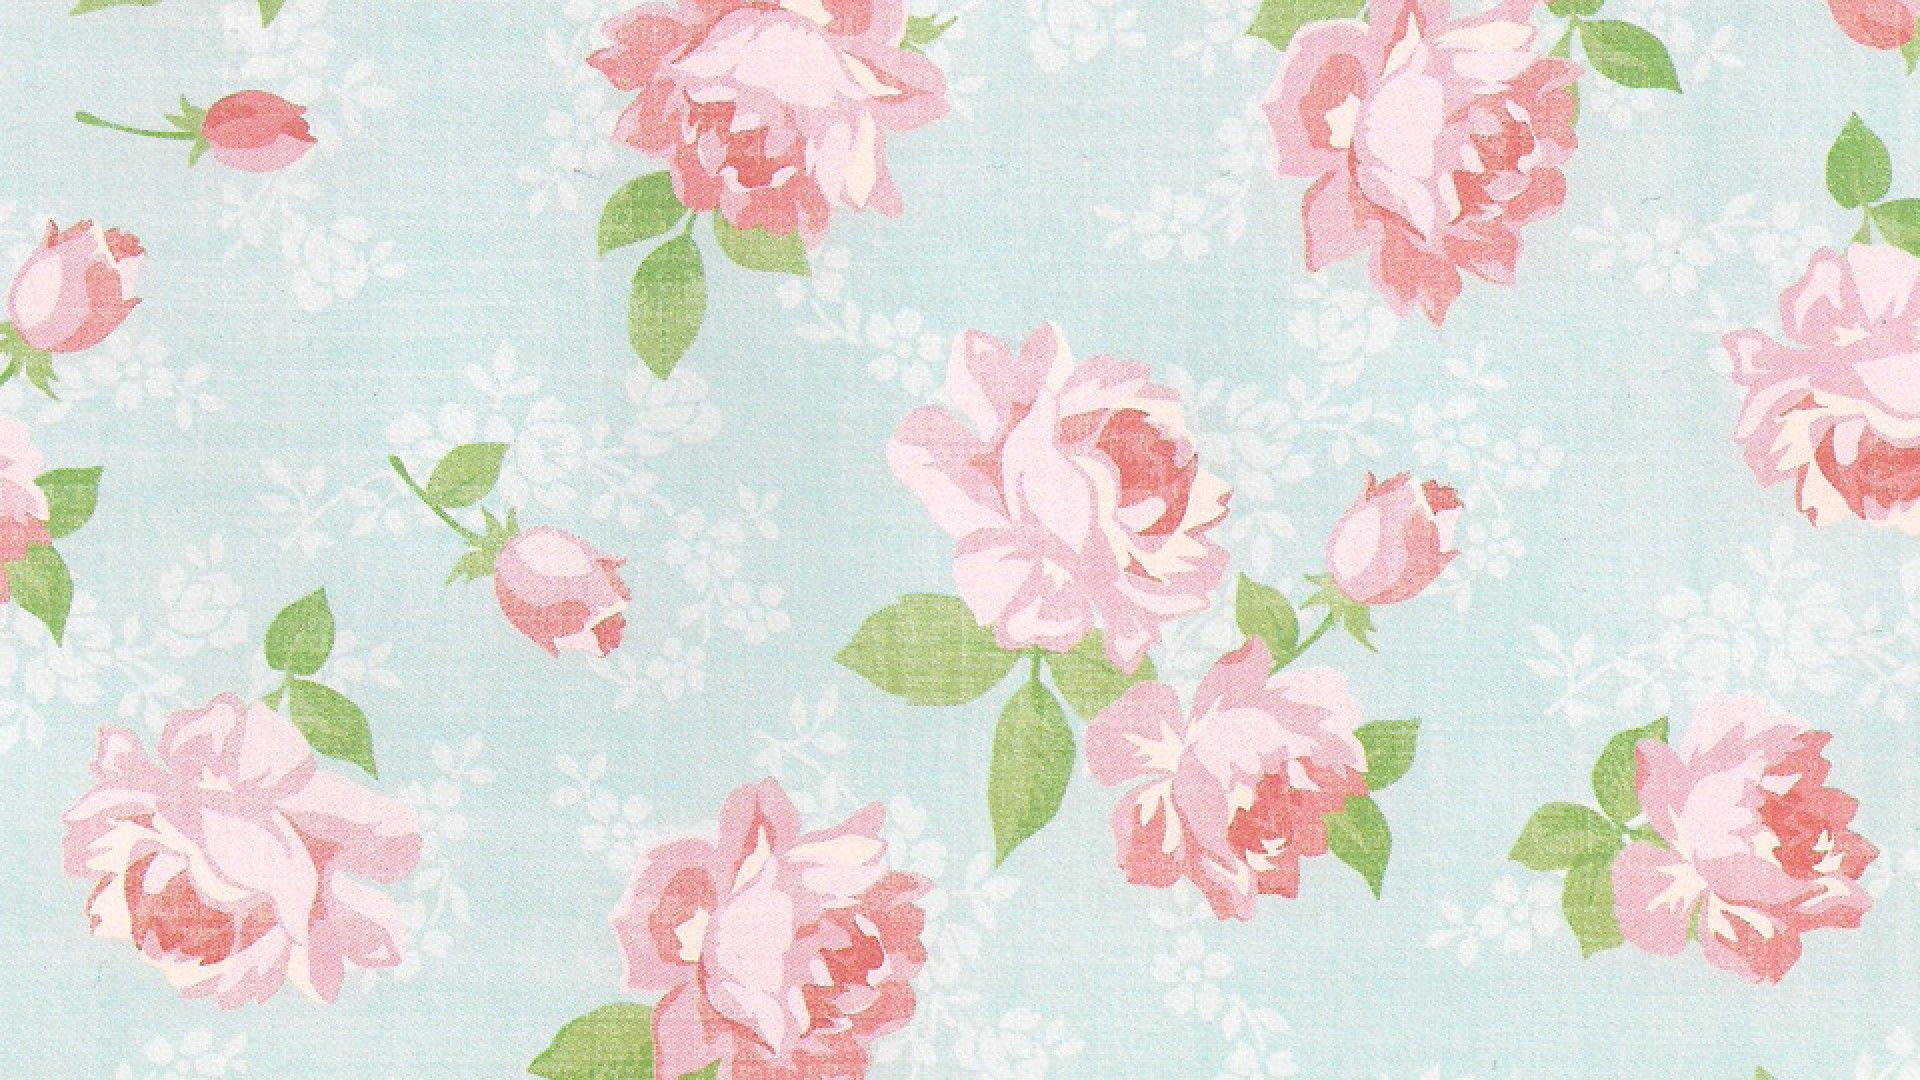 Old Fashioned Floral Wallpaper Pink Vintage Wallpapers Hd